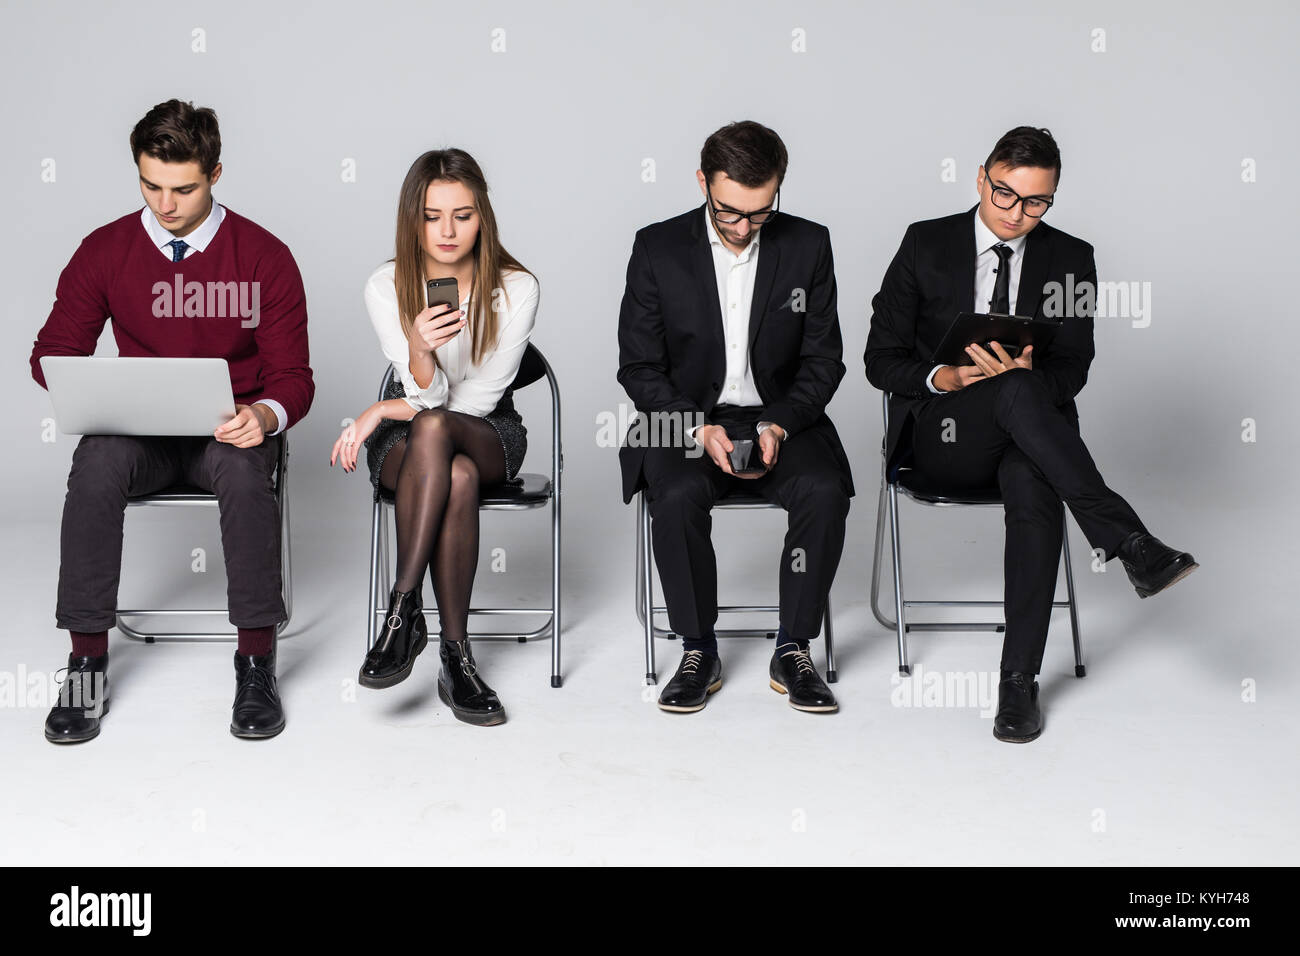 Stressful moment for people wait in queue. Nervous candidates for prestigious job wait with anxiety for interview, - Stock Image